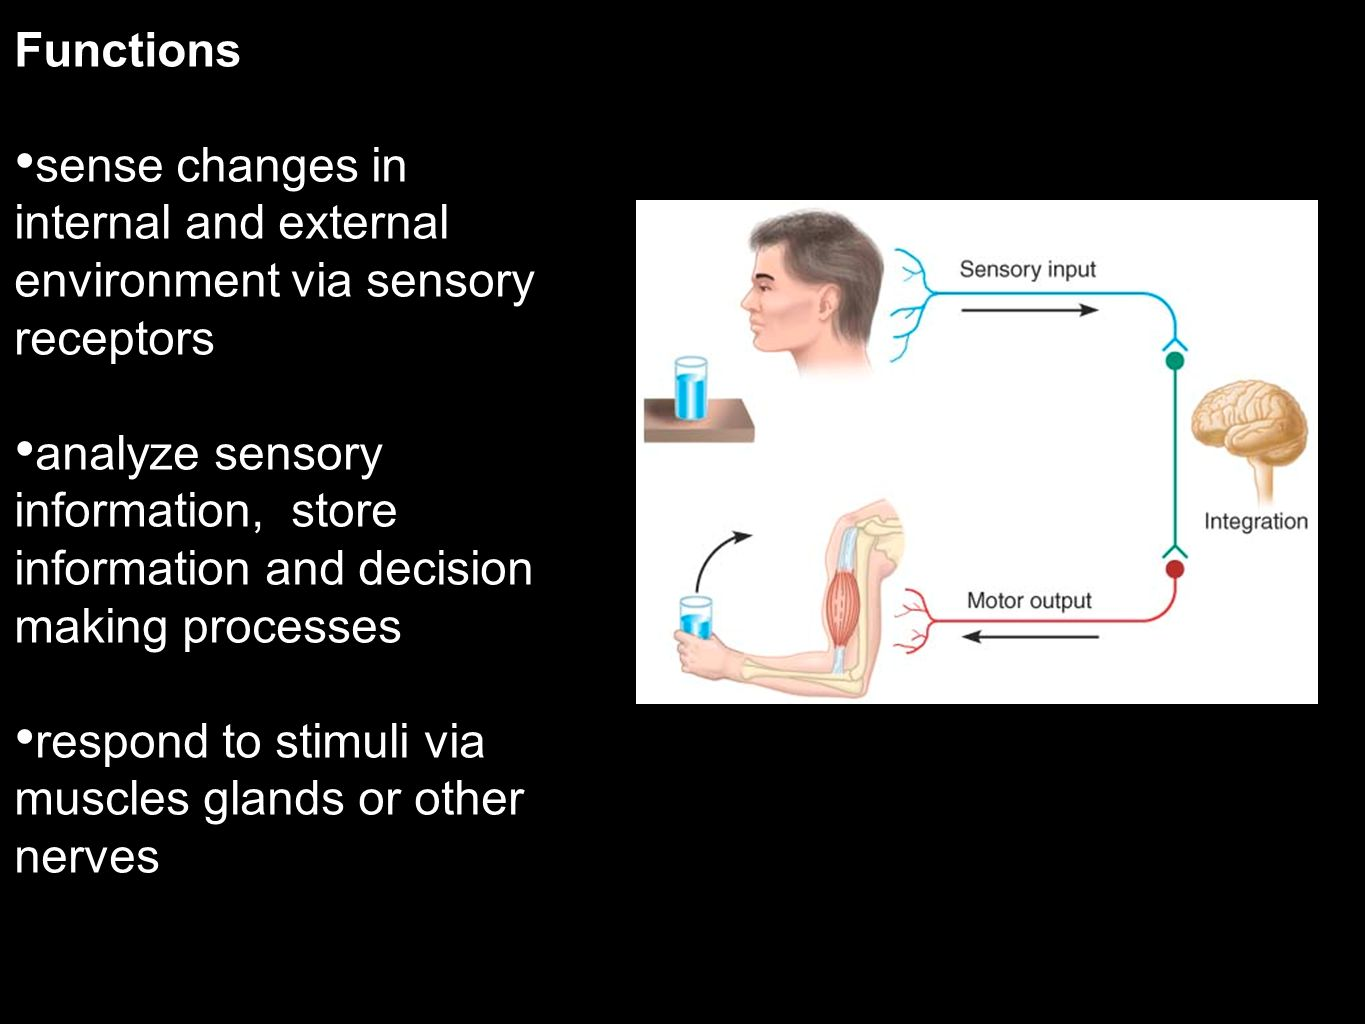 Functions sense changes in internal and external environment via sensory receptors.